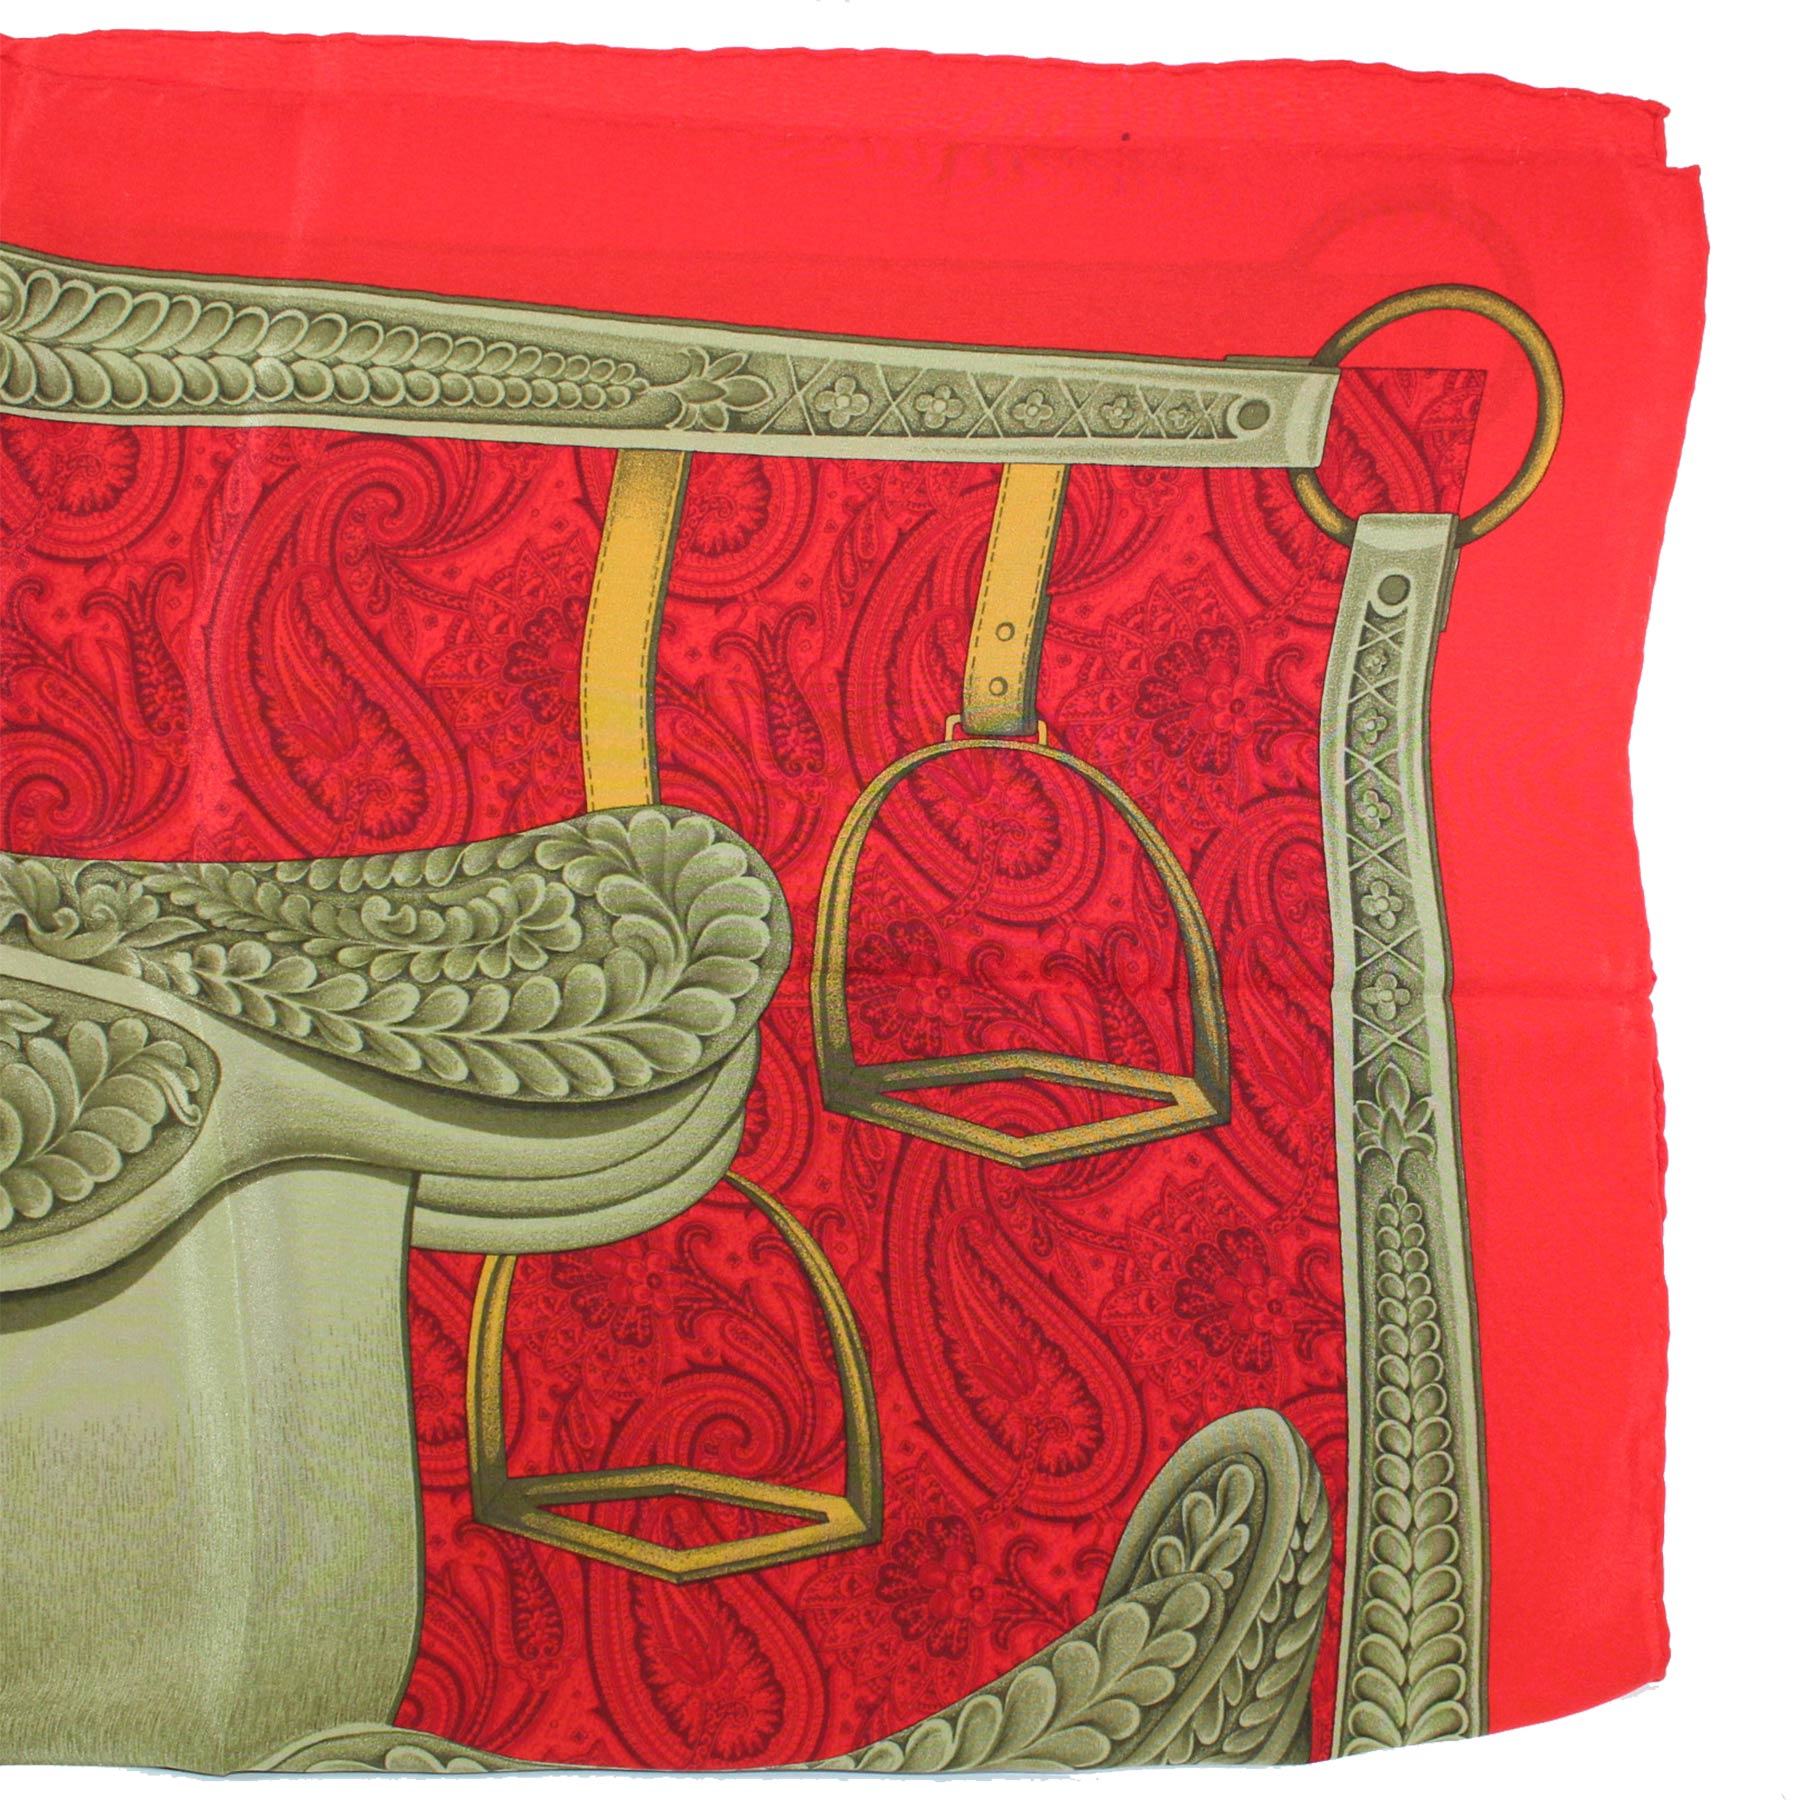 Vivienne Glamour Scarf Red Taupe Equestrian Design - Large Silk Square Scarf Made In Italy SALE